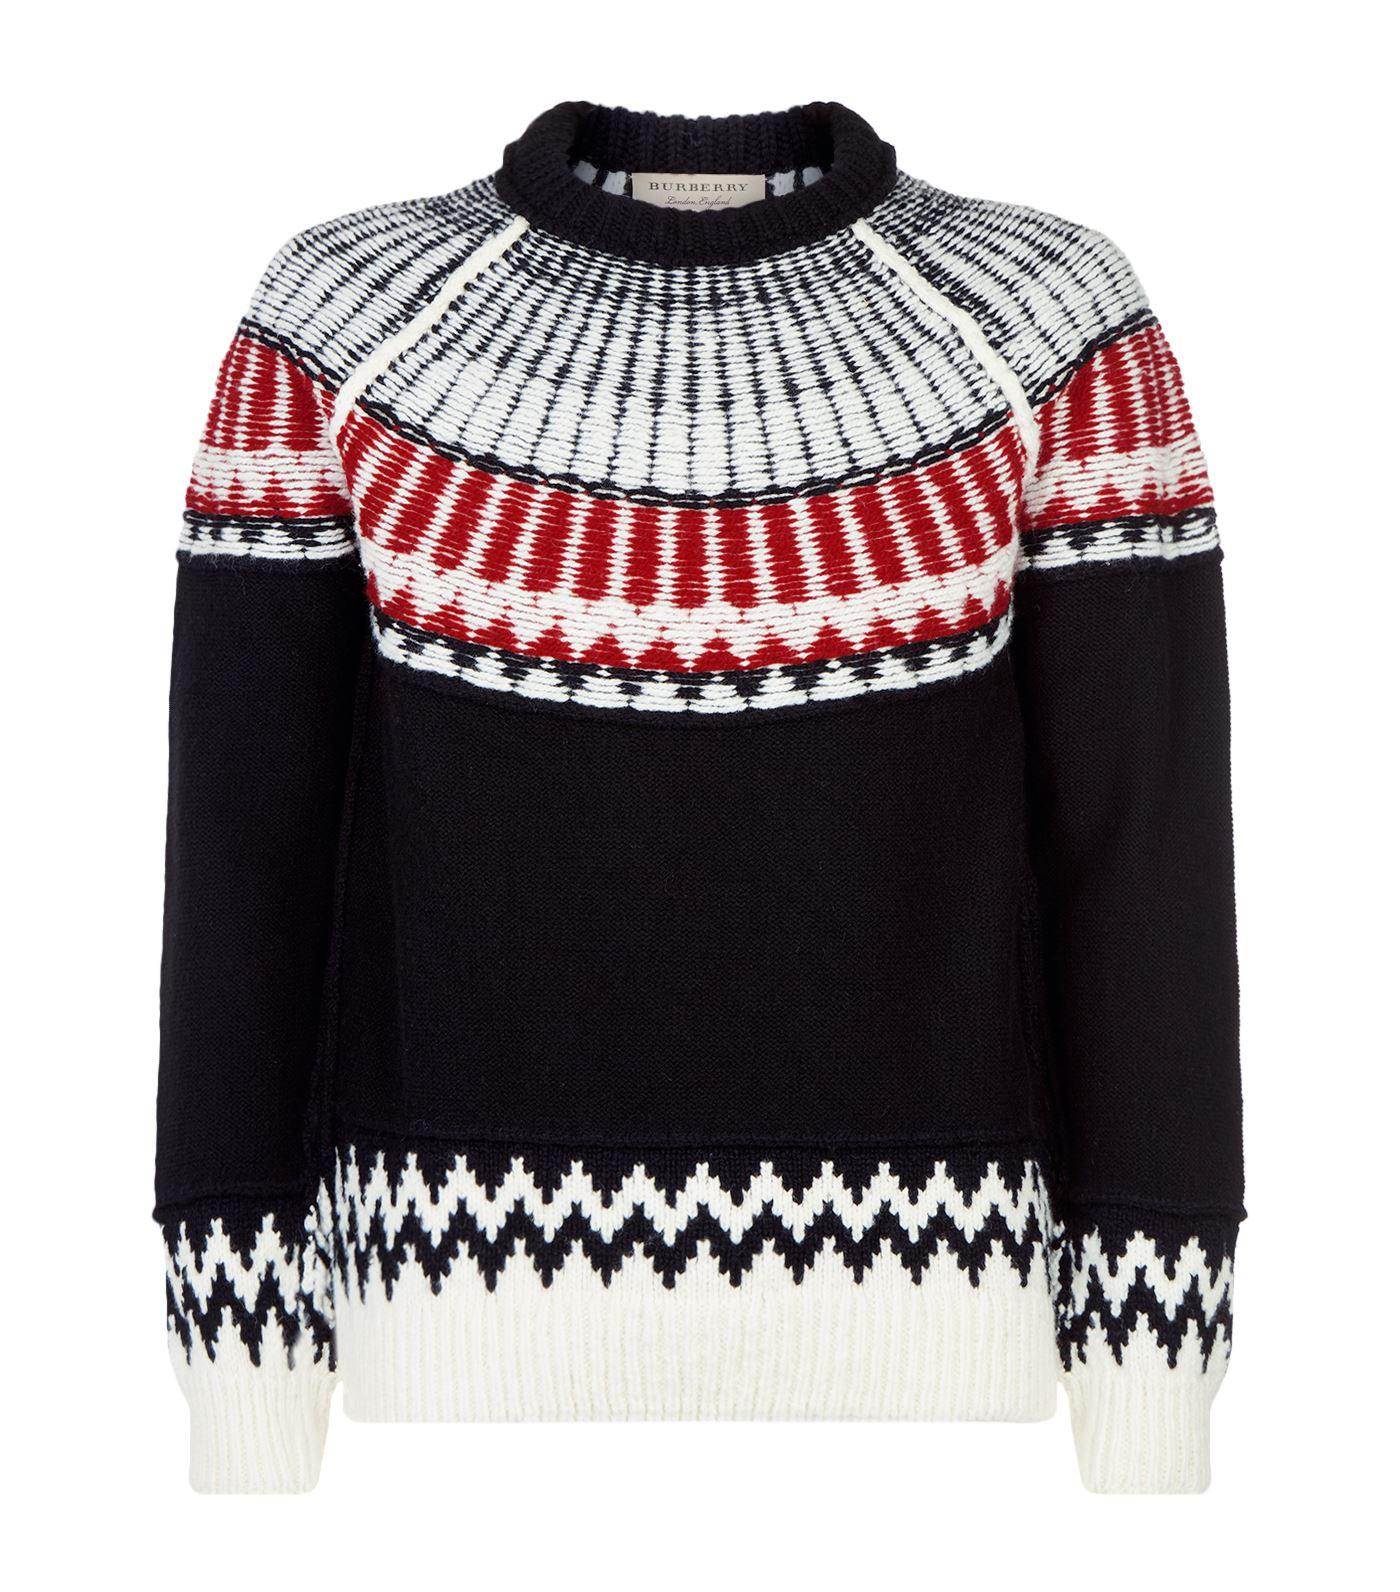 Burberry Fair Isle Sweater in Black | Lyst